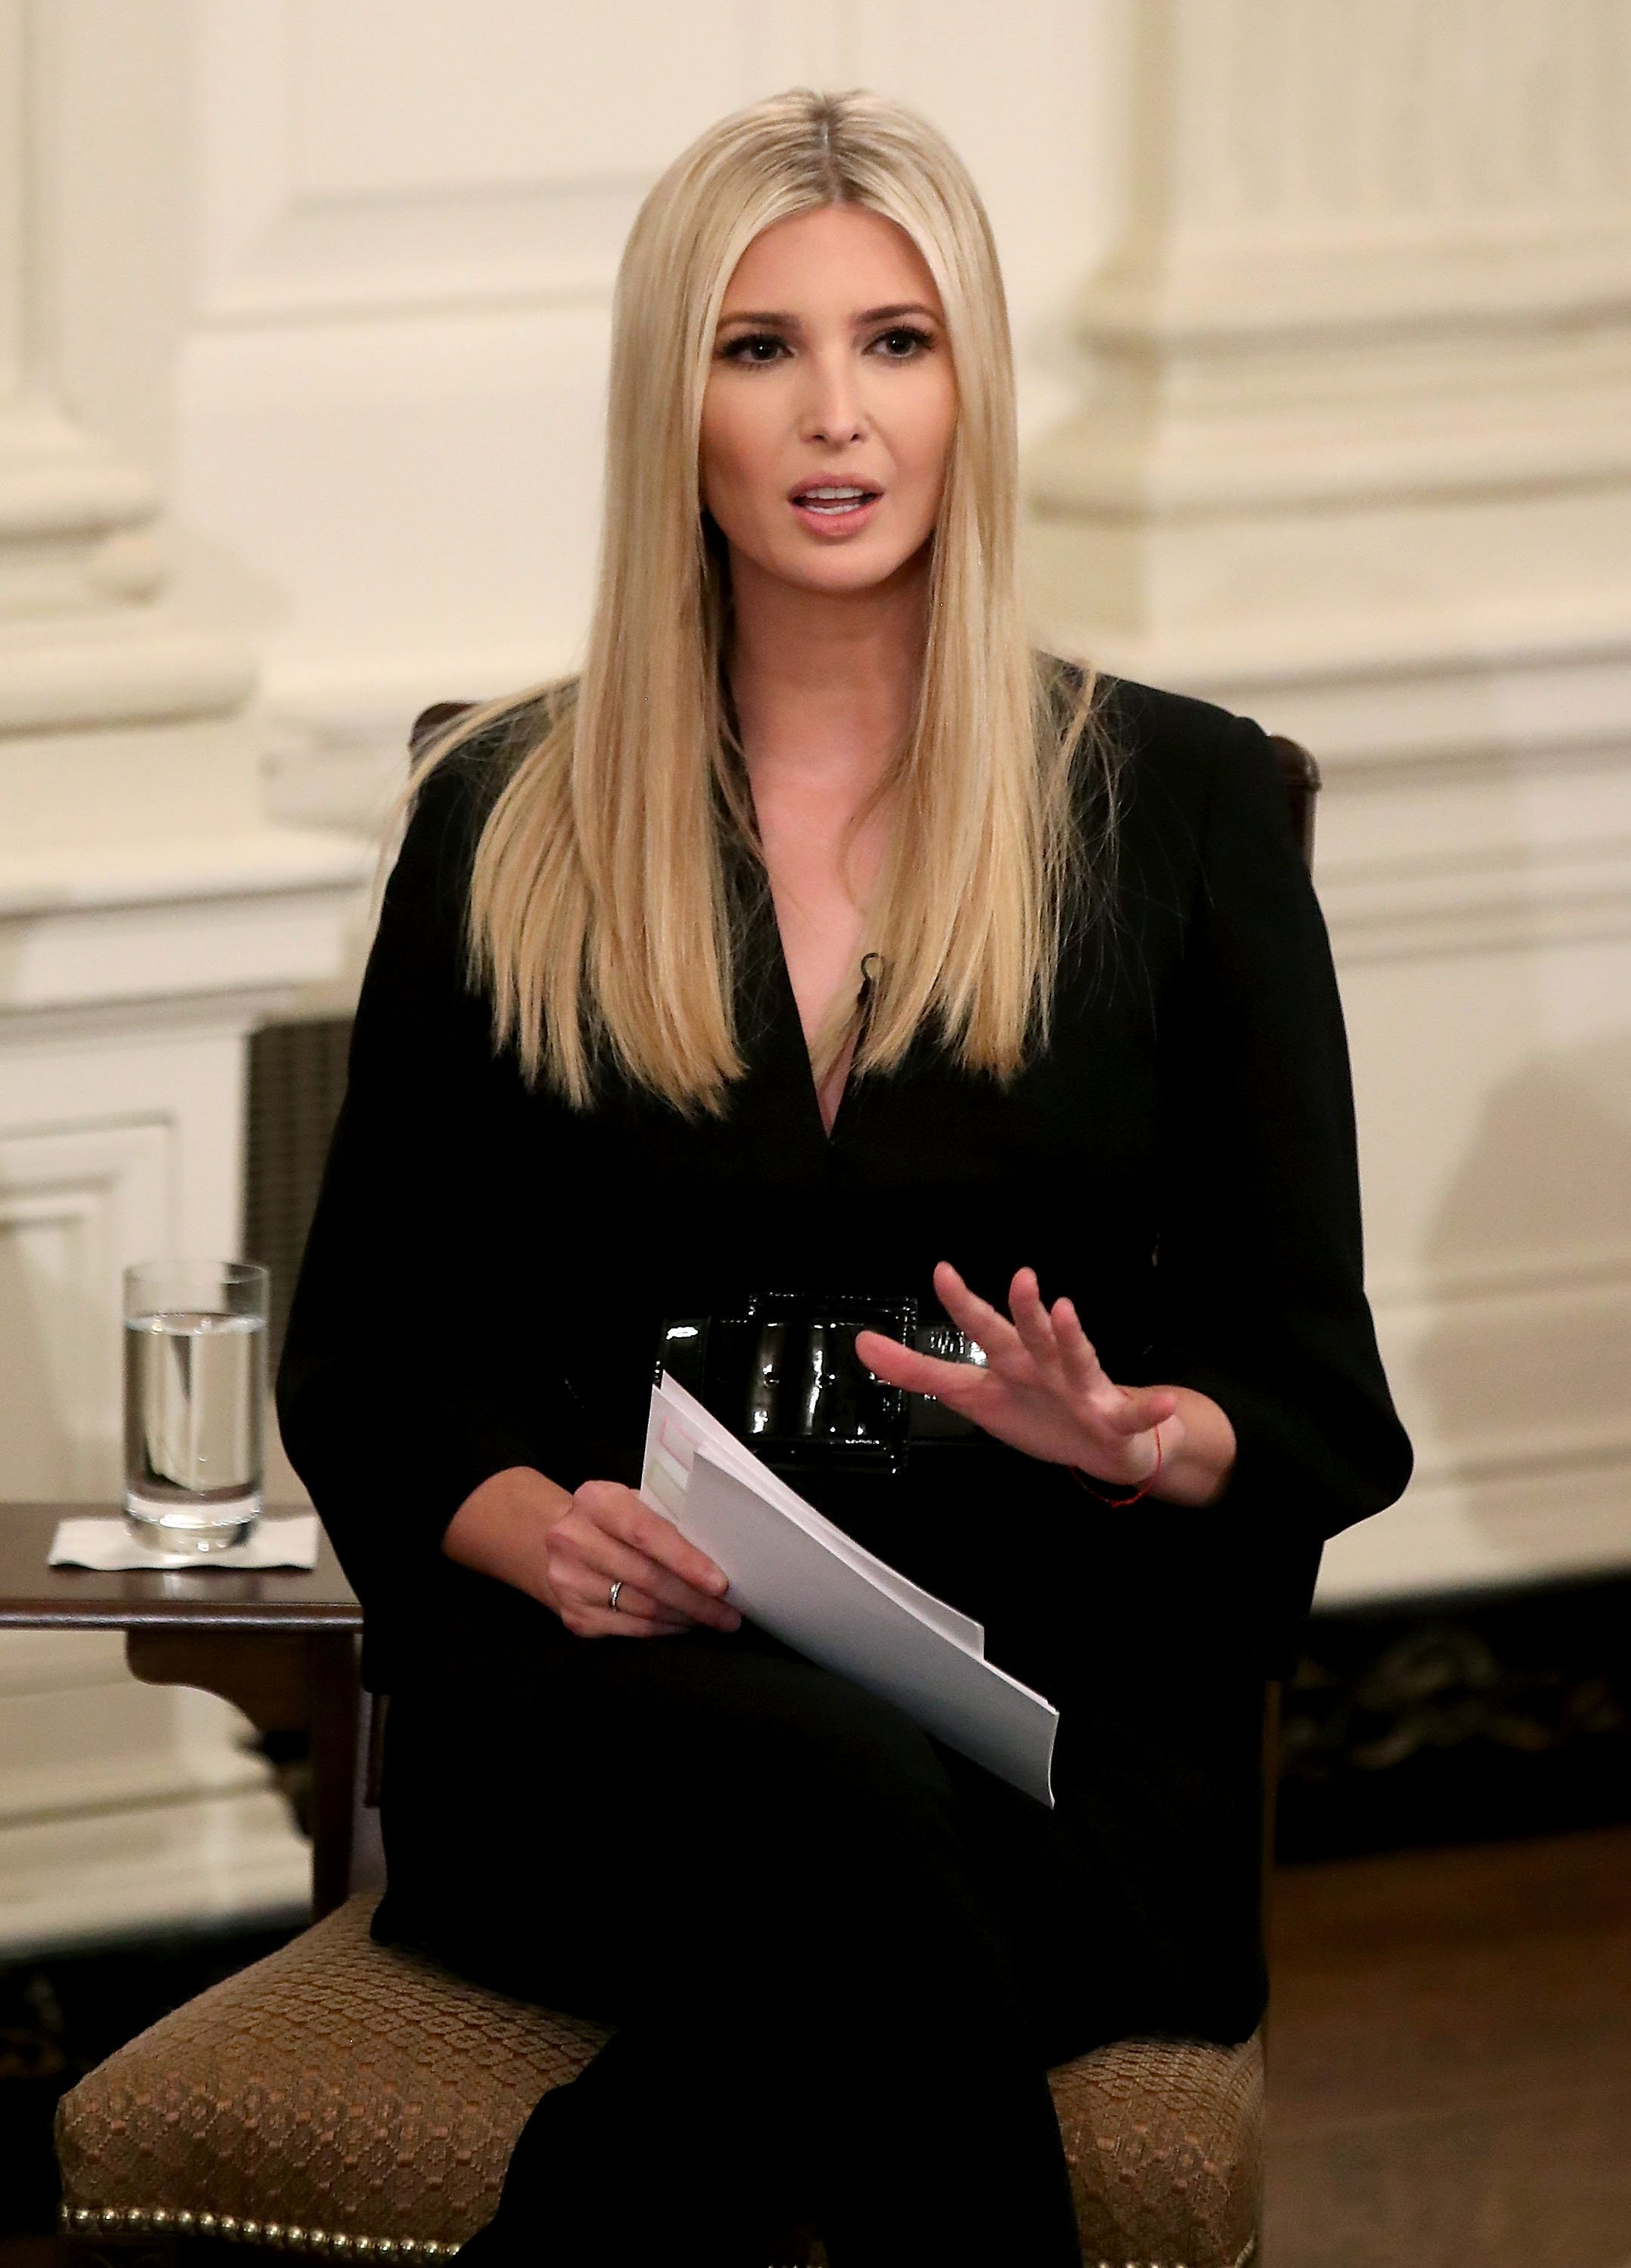 Ivanka Trump in the State Dining Room of the White House on Oct. 31, 2018 in Washington, DC. | Photo: Getty Images